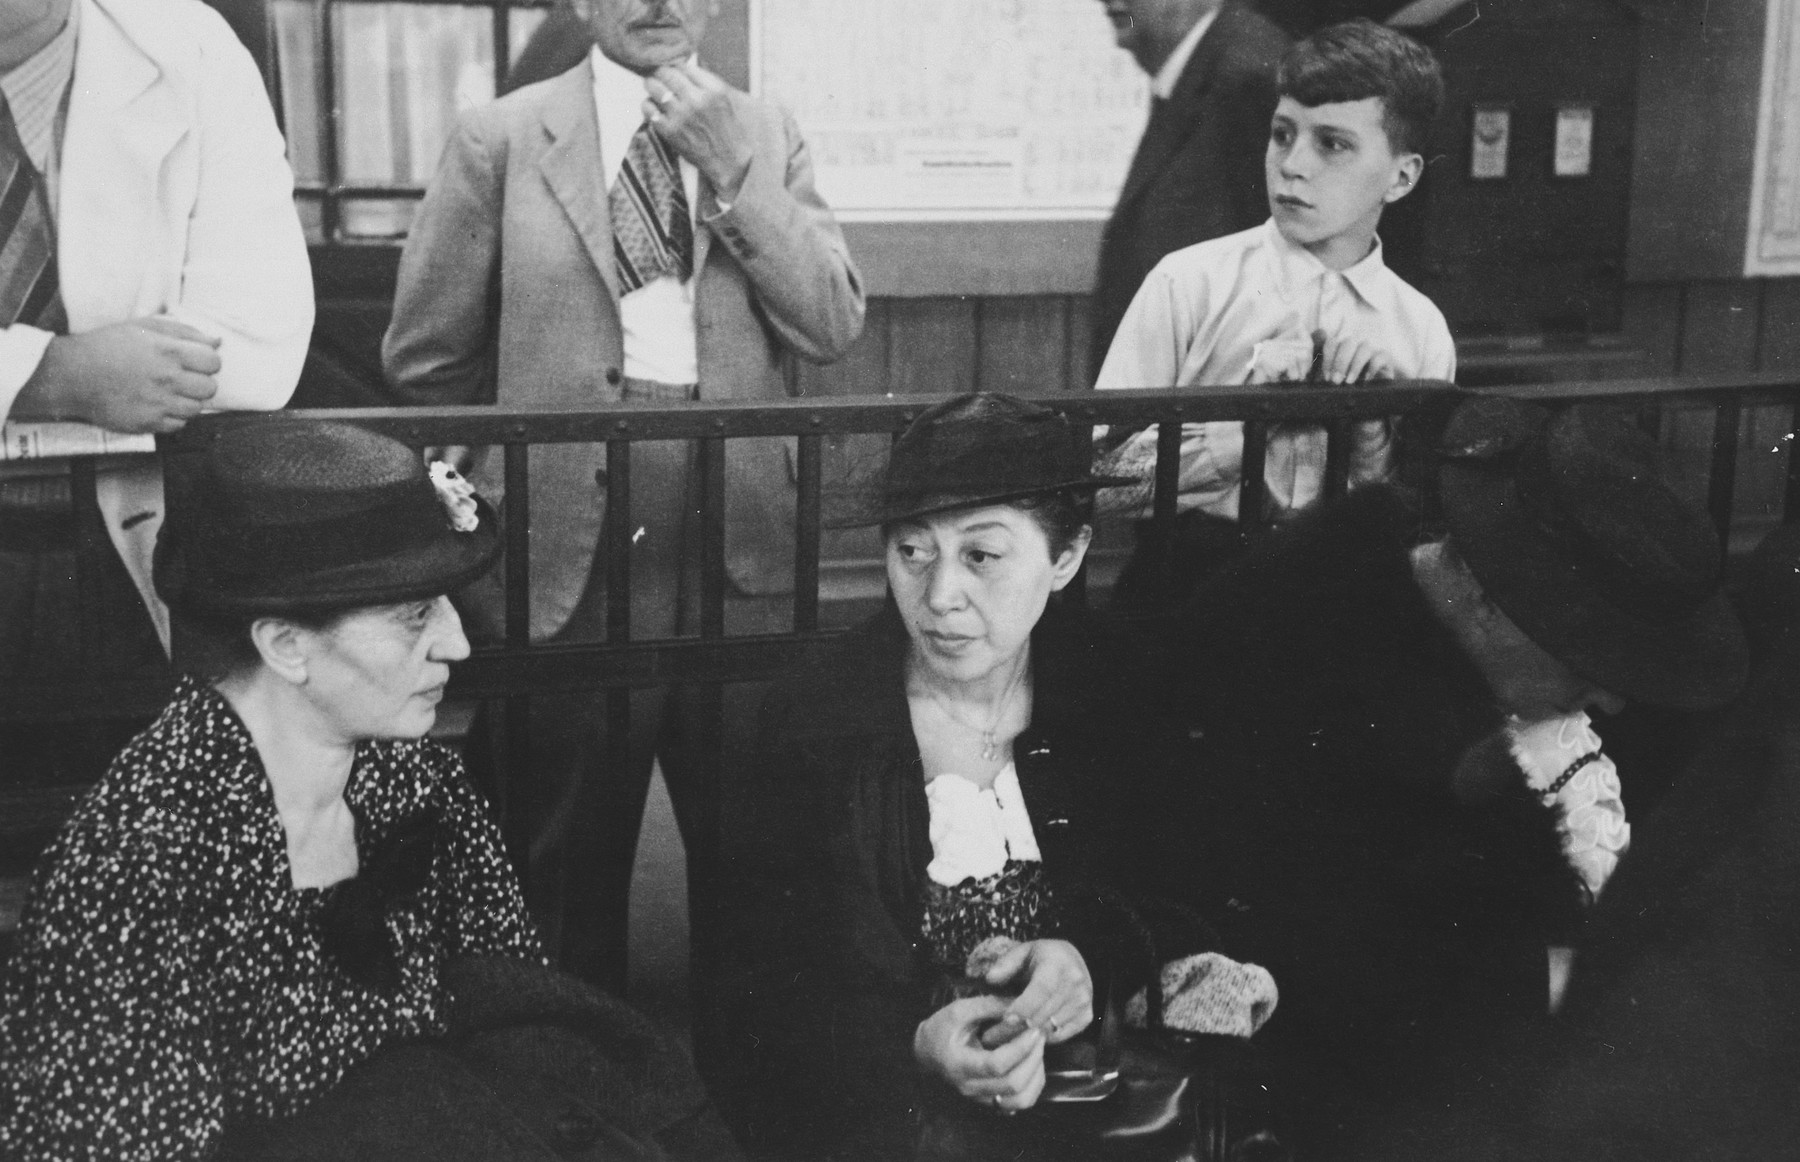 Two German Jewish sisters sit next to each other in a port while waiting for the departure of a ship.  Pictured are Fanny (left) and Talie (right) Bähr.  Talie and Julius are about to sail to New York to visit their son,  Dr. Heinz Bähr.